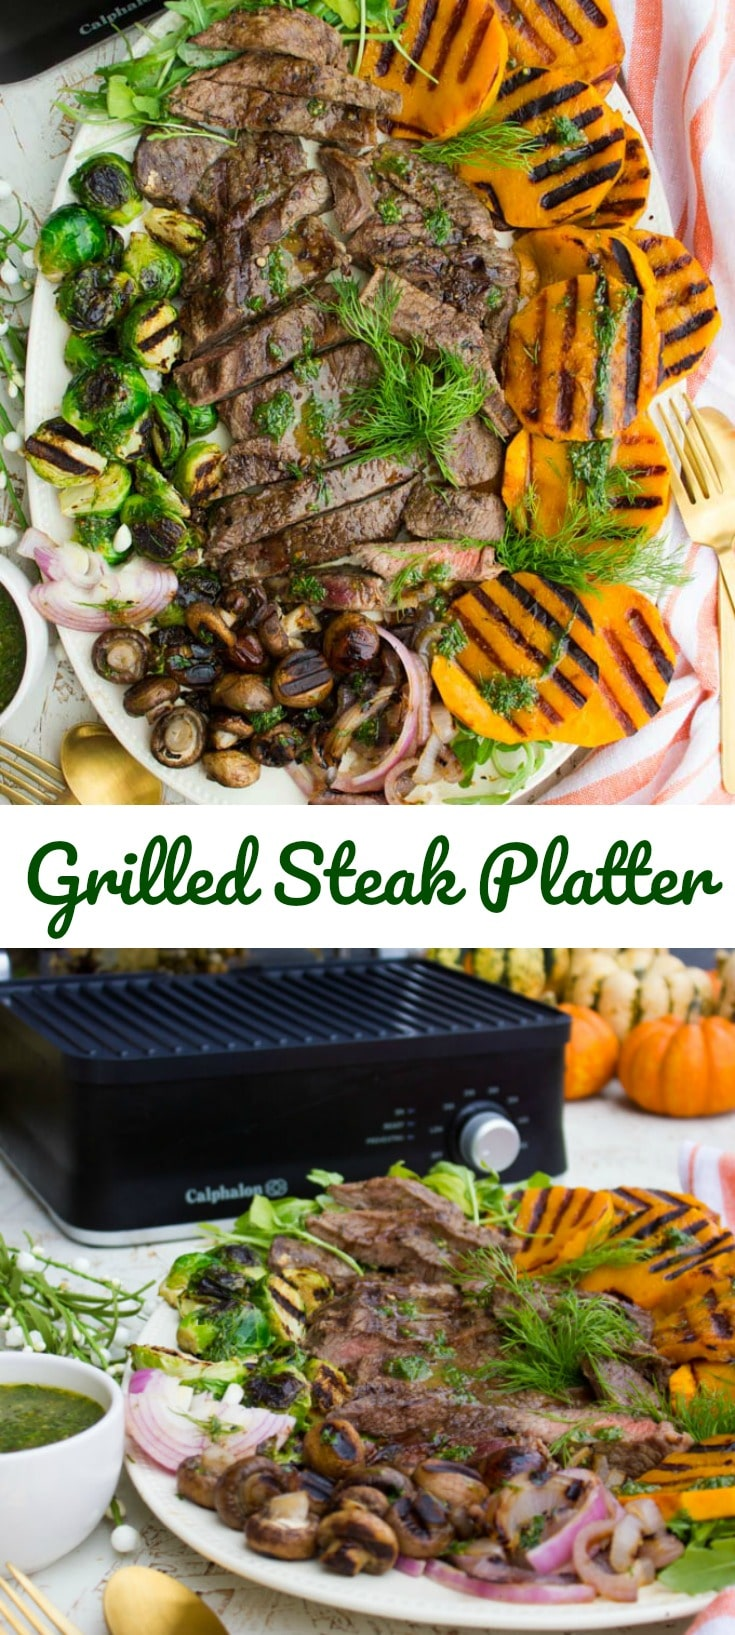 This Grilled Steak and Fall Veggies Platter is the perfect  plate to share this season! There's something for everyone, it comes together in minutes and it's a burst of flavor and freshness from a sweet dill dressing!